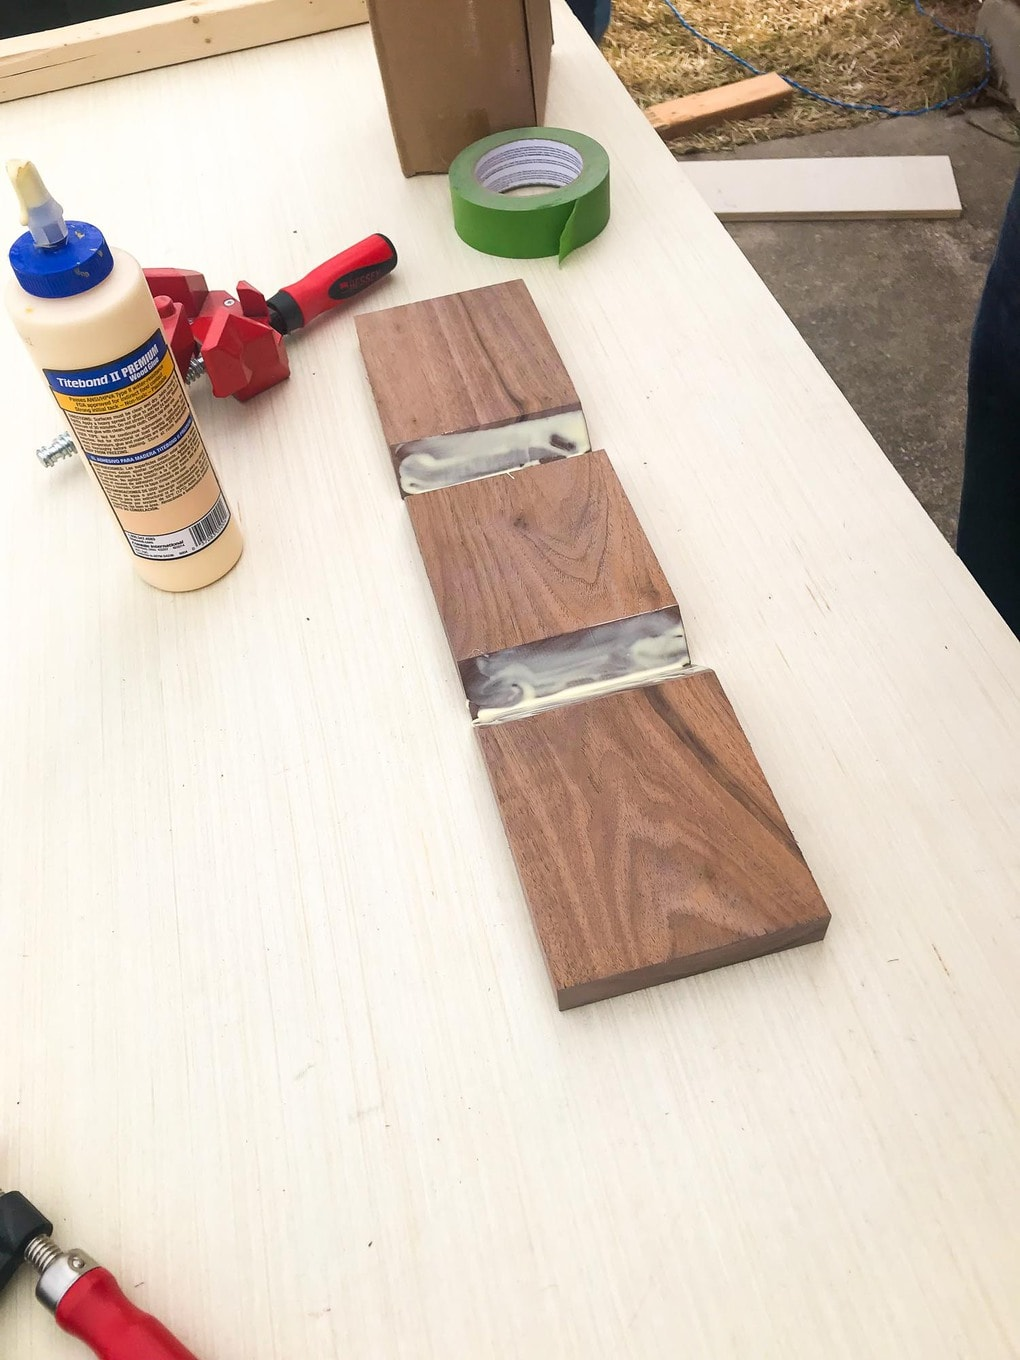 Sofa Arm Table Pieces Being Glued